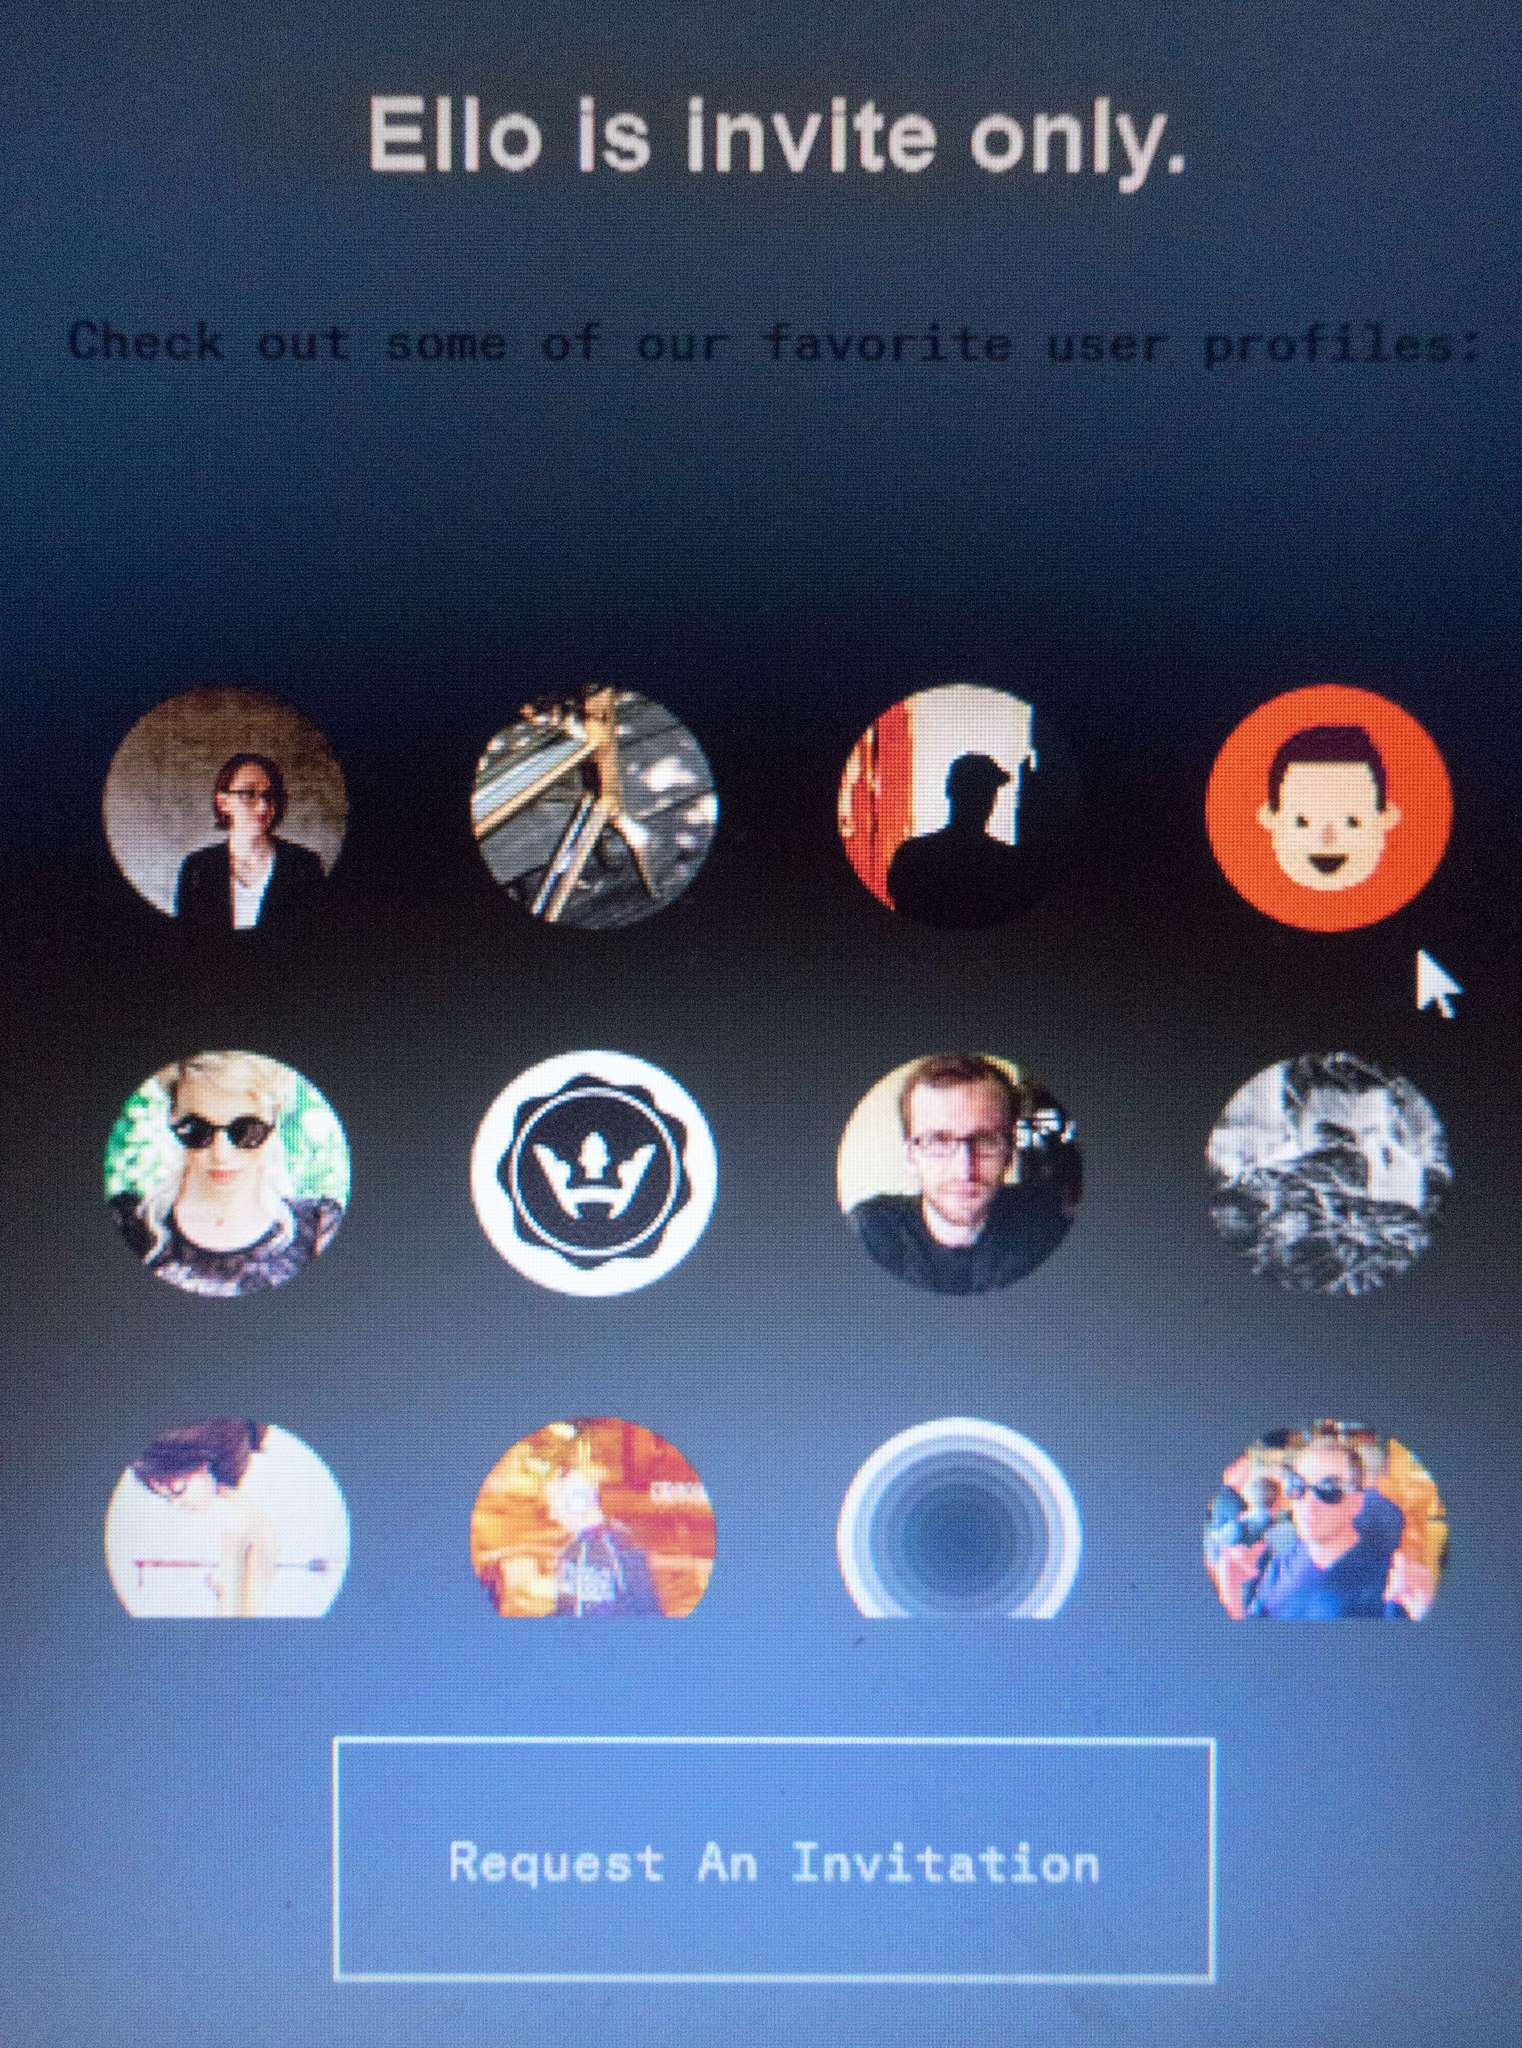 If you're going to sign up for Ello, do it for the right reasons